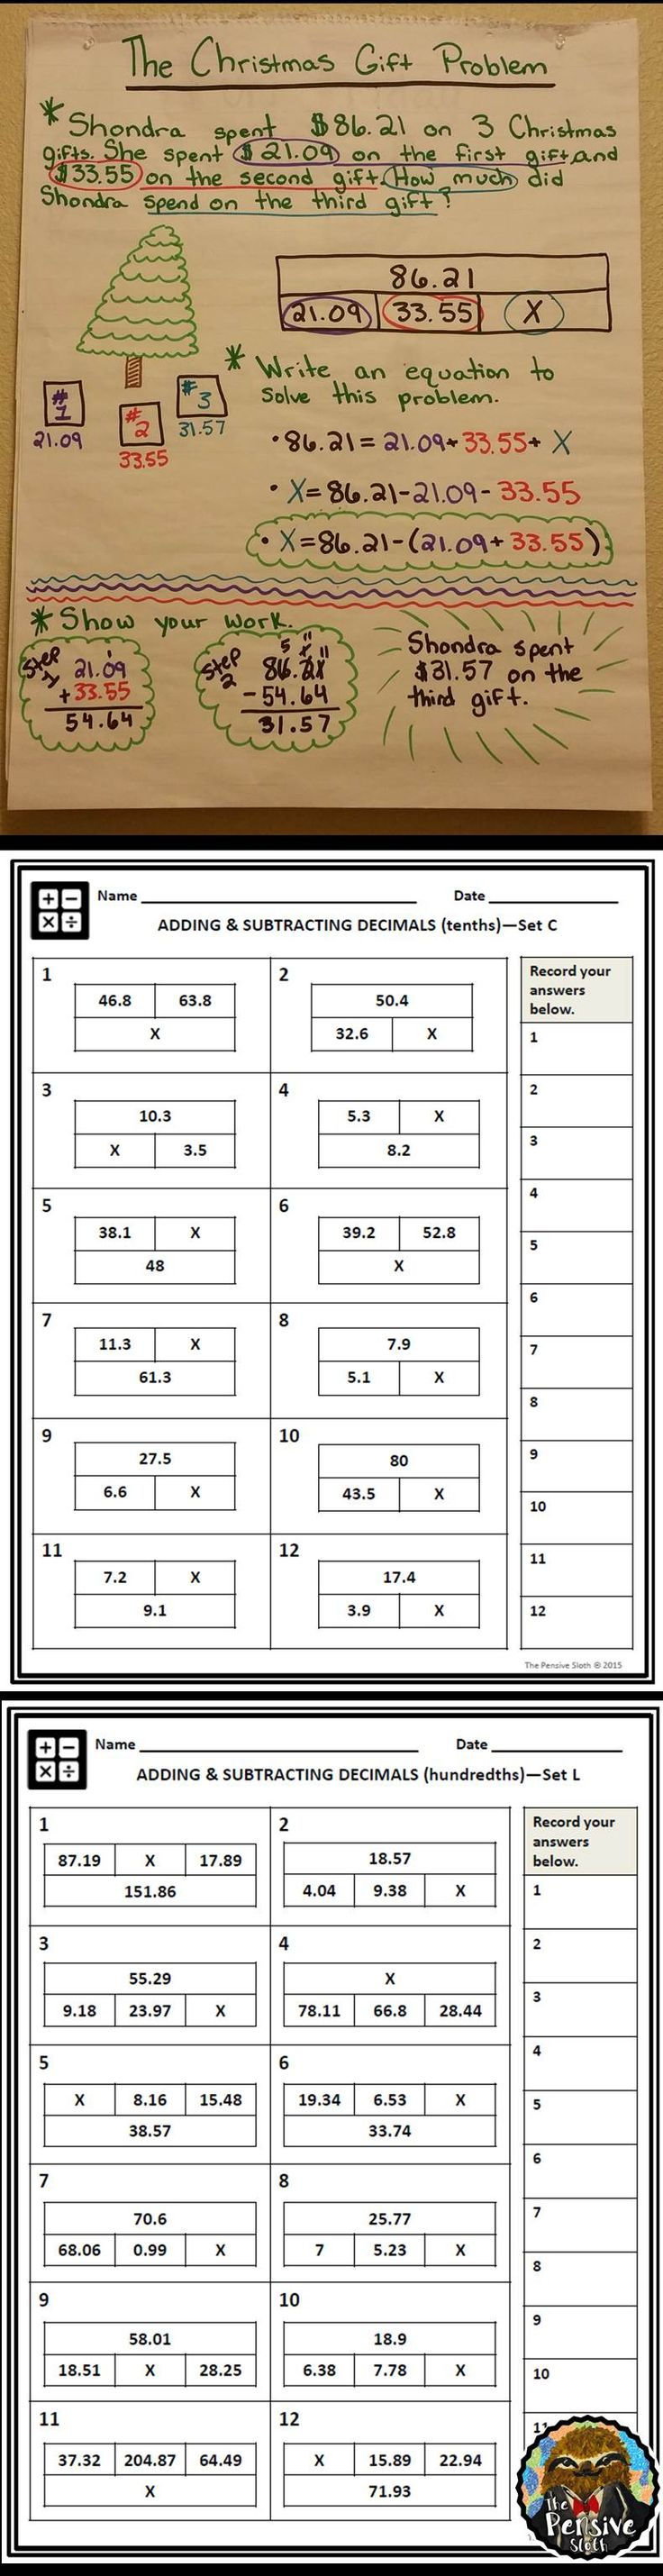 4th grade tape strip diagram worksheets for adding and 4th grade tape strip diagram worksheets for adding and subtracting decimals robcynllc Gallery